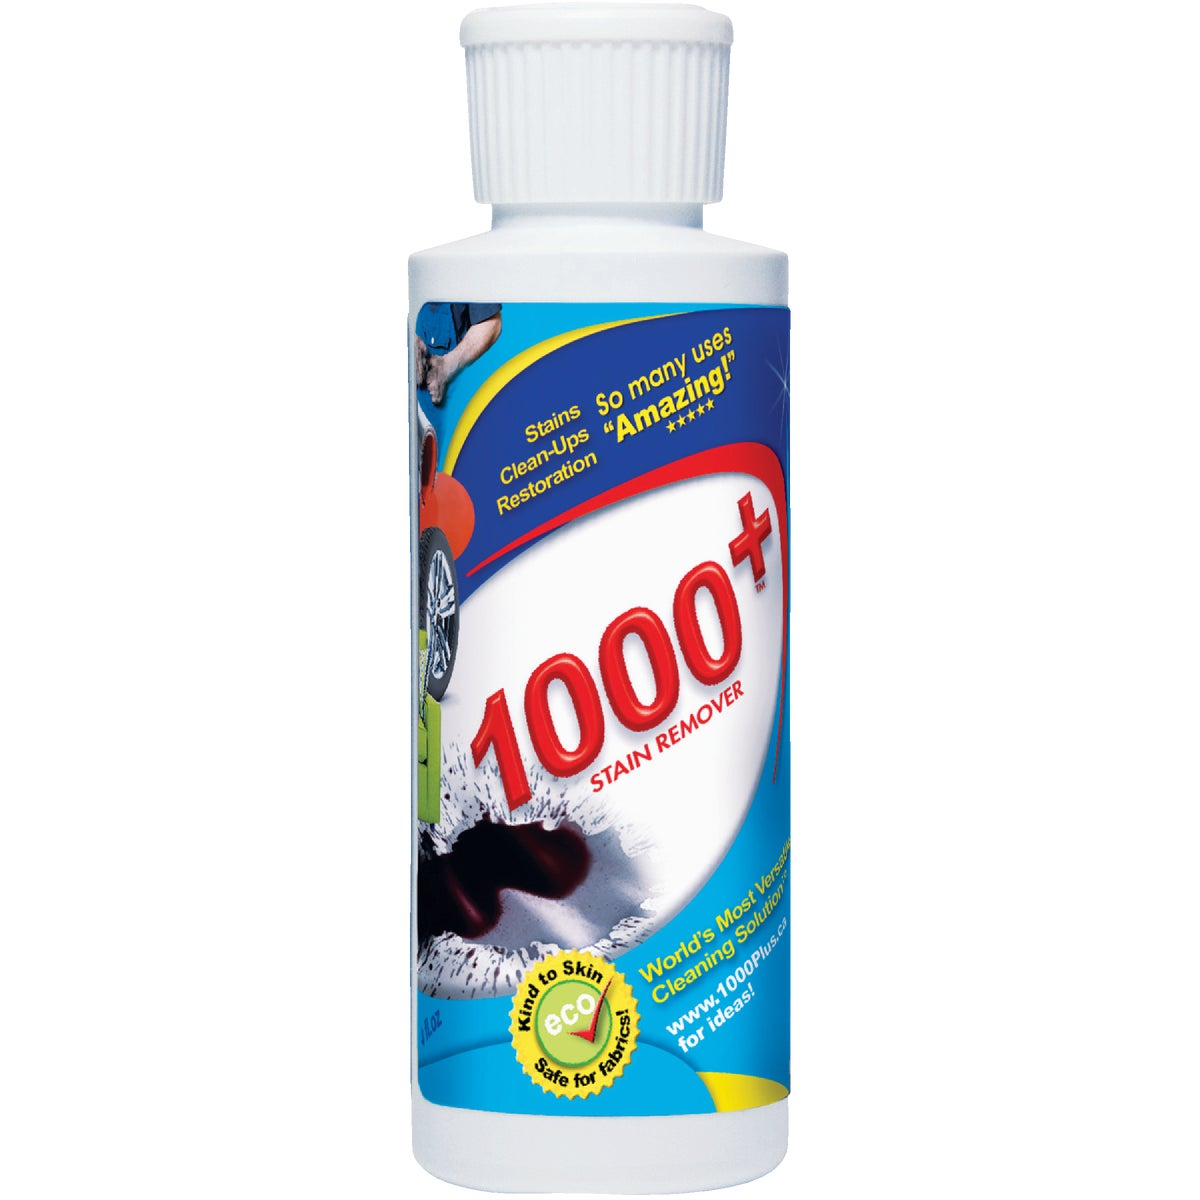 4OZ 1000+ STAIN REMOVER